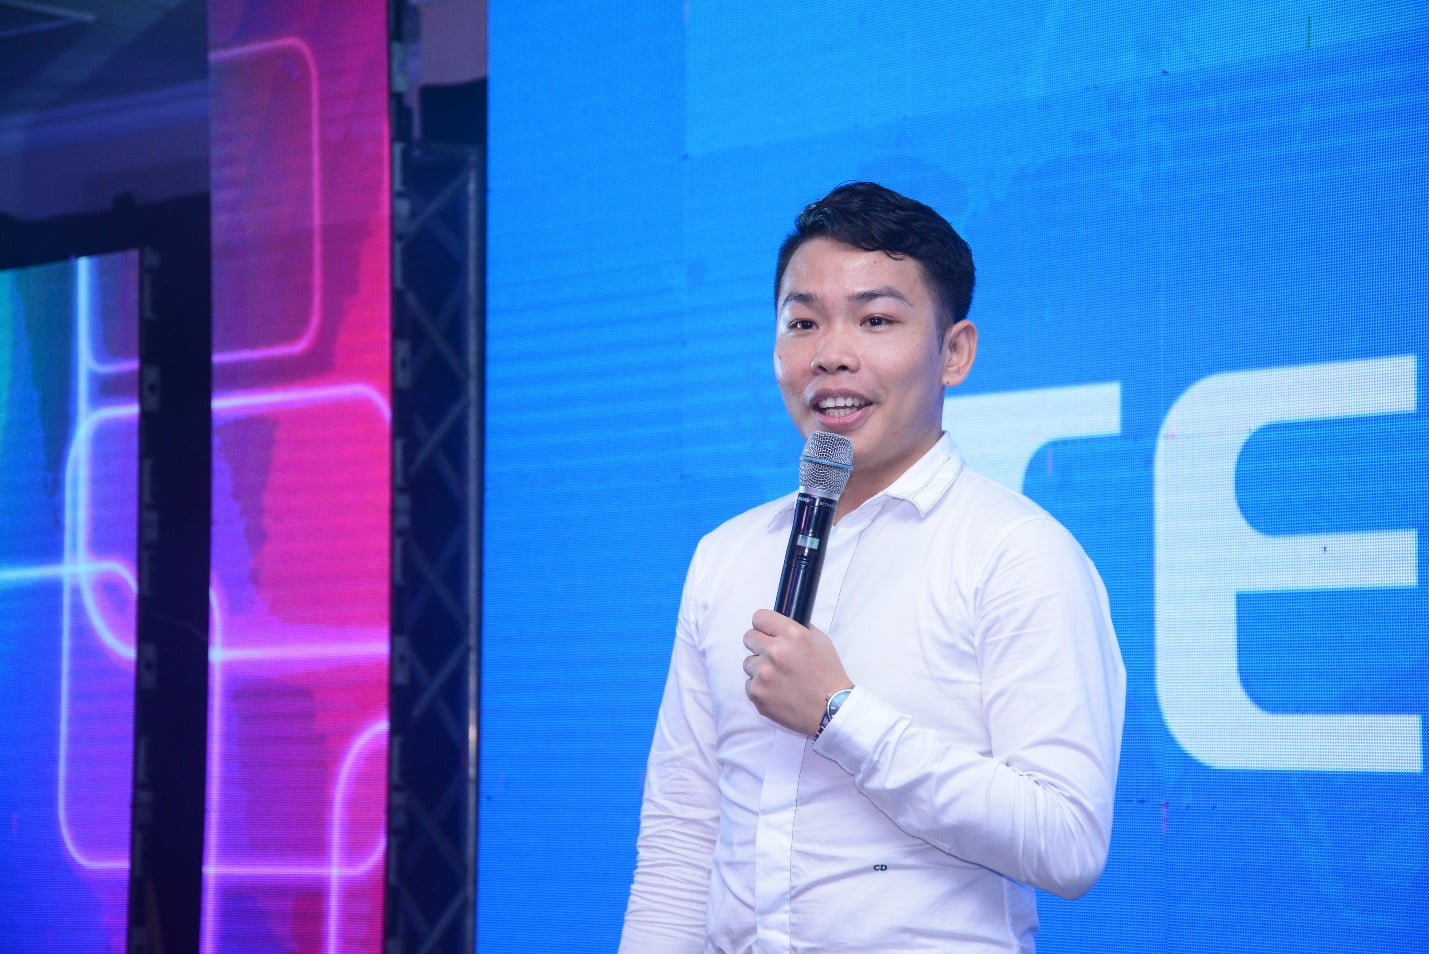 Luke Pan Brand Manager TECNO Mobile - Time To Light Up: Tecno Launches Upgraded Spark 3 Series With Ai Bright Camera